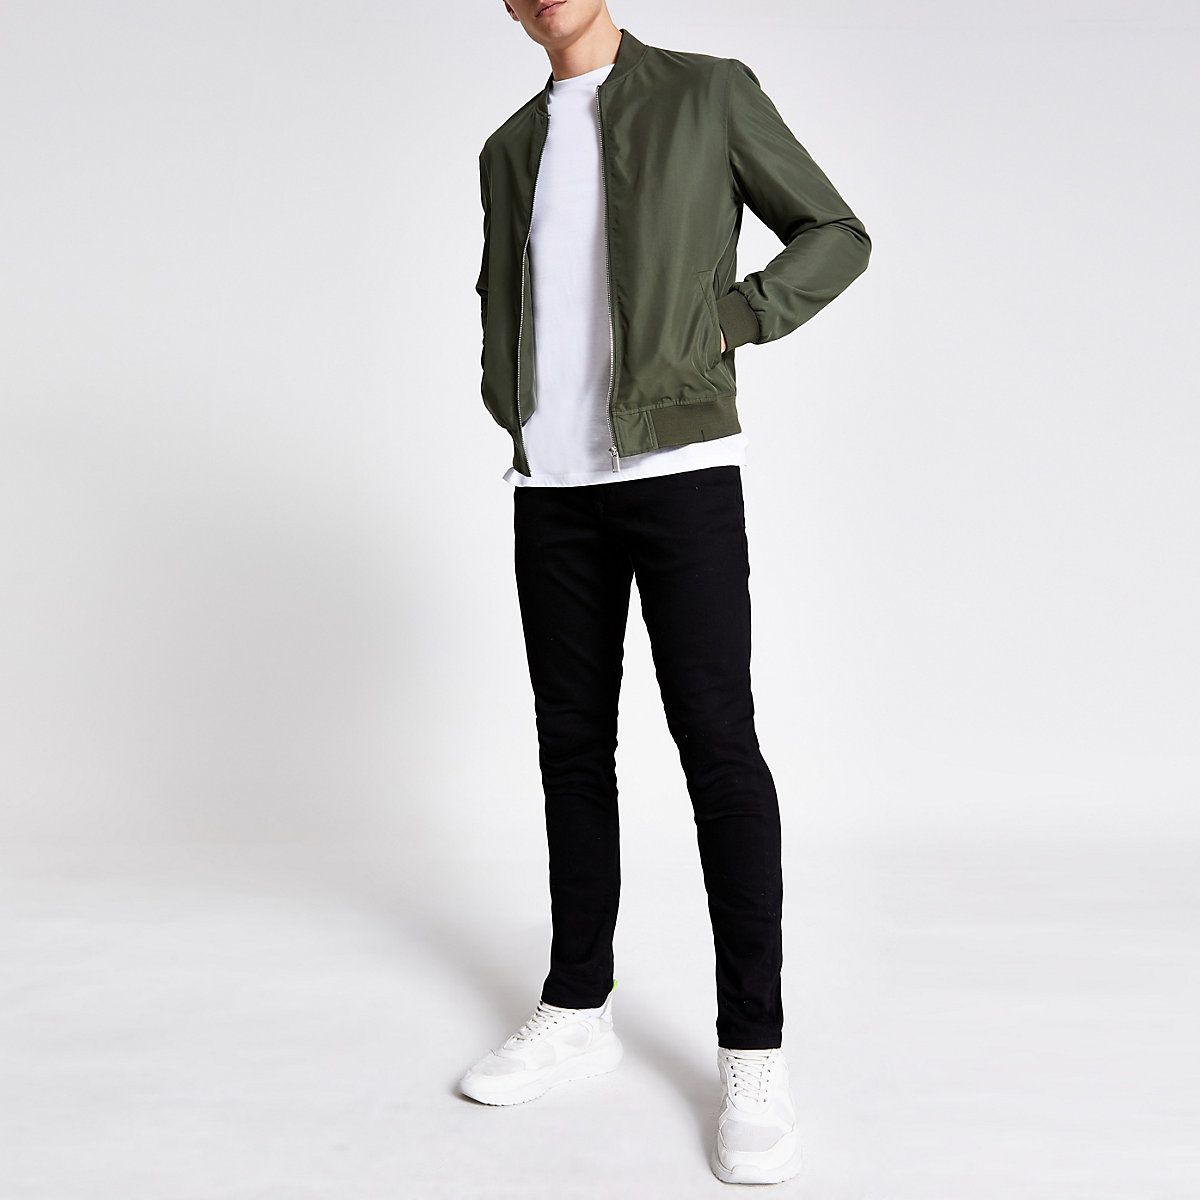 River Island Khaki green bomber jacket